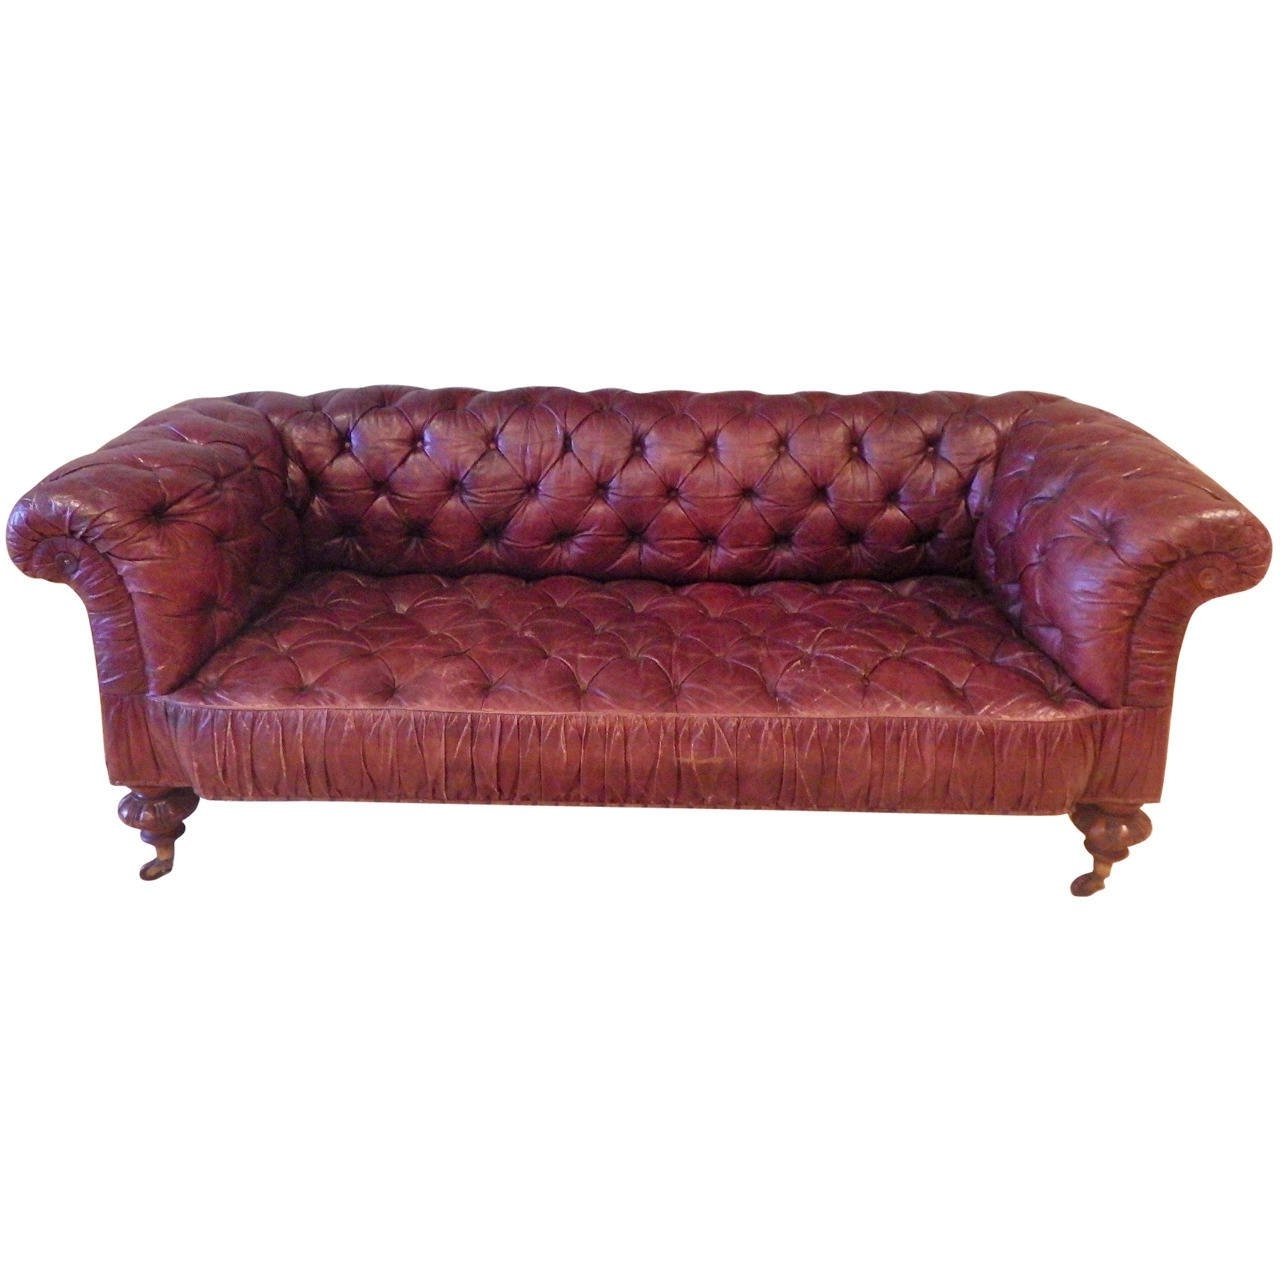 Most Recent Superb Victorian Leather Sofa, Circa 1870 For Sale At 1Stdibs With Regard To Victorian Leather Sofas (View 7 of 15)